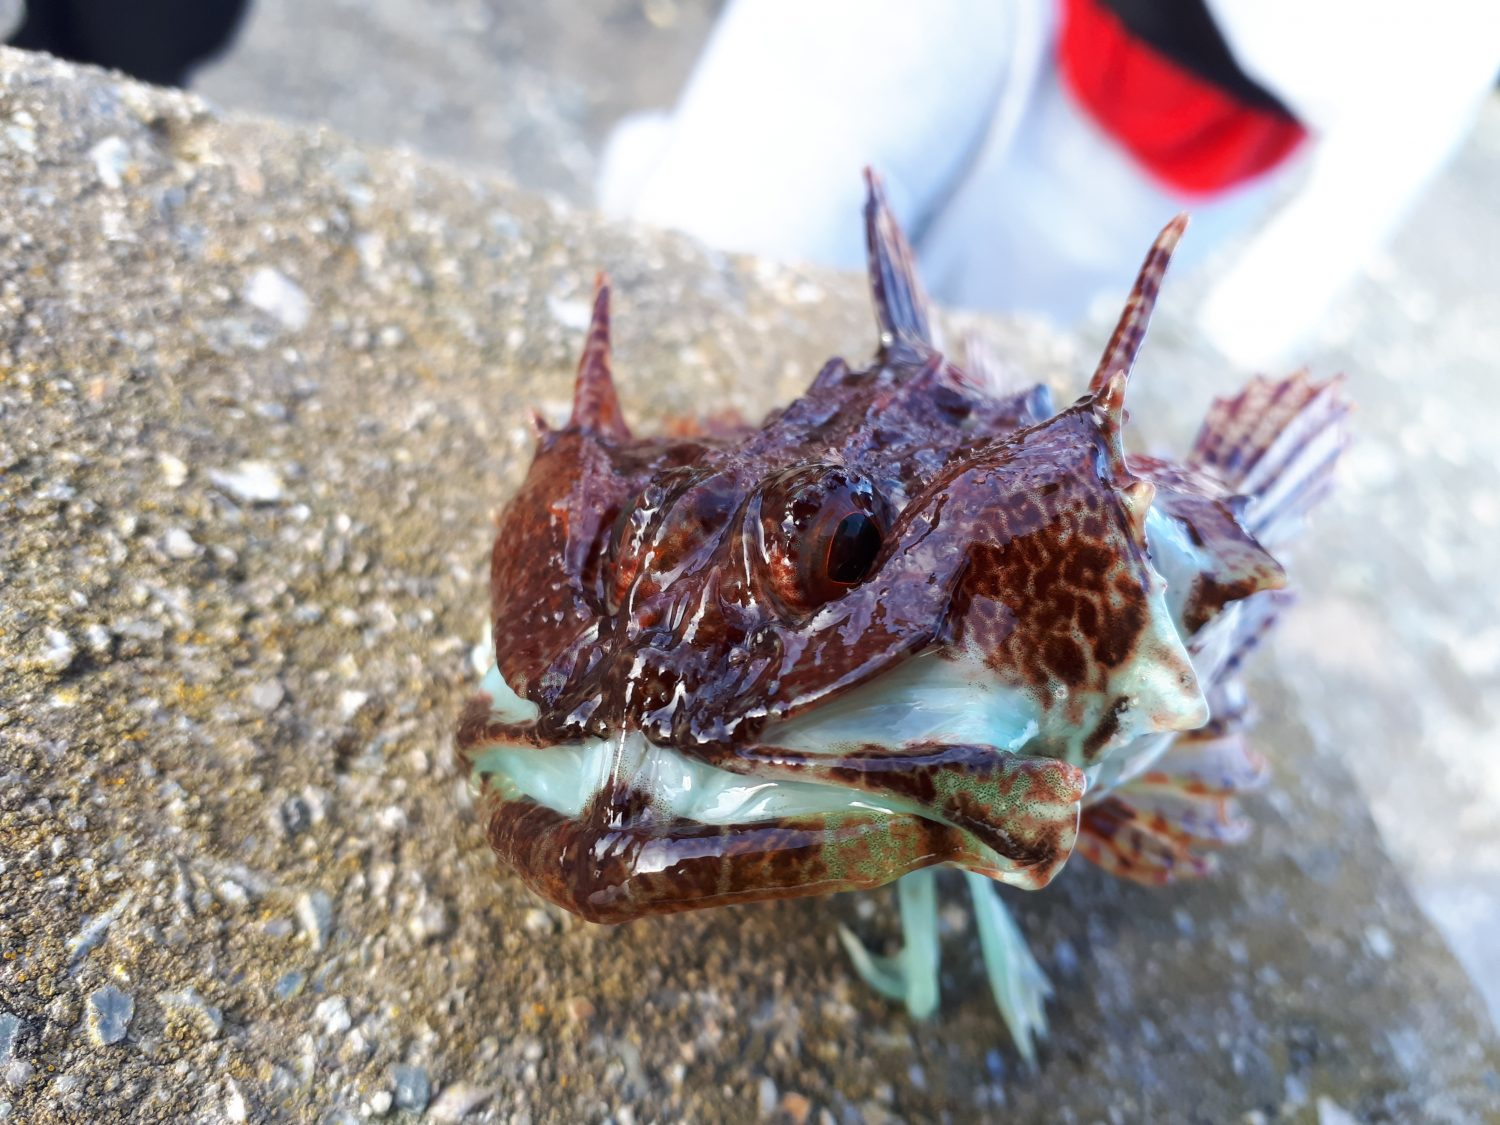 picture of a Scorpion fish caught at Holyhead Breakwater